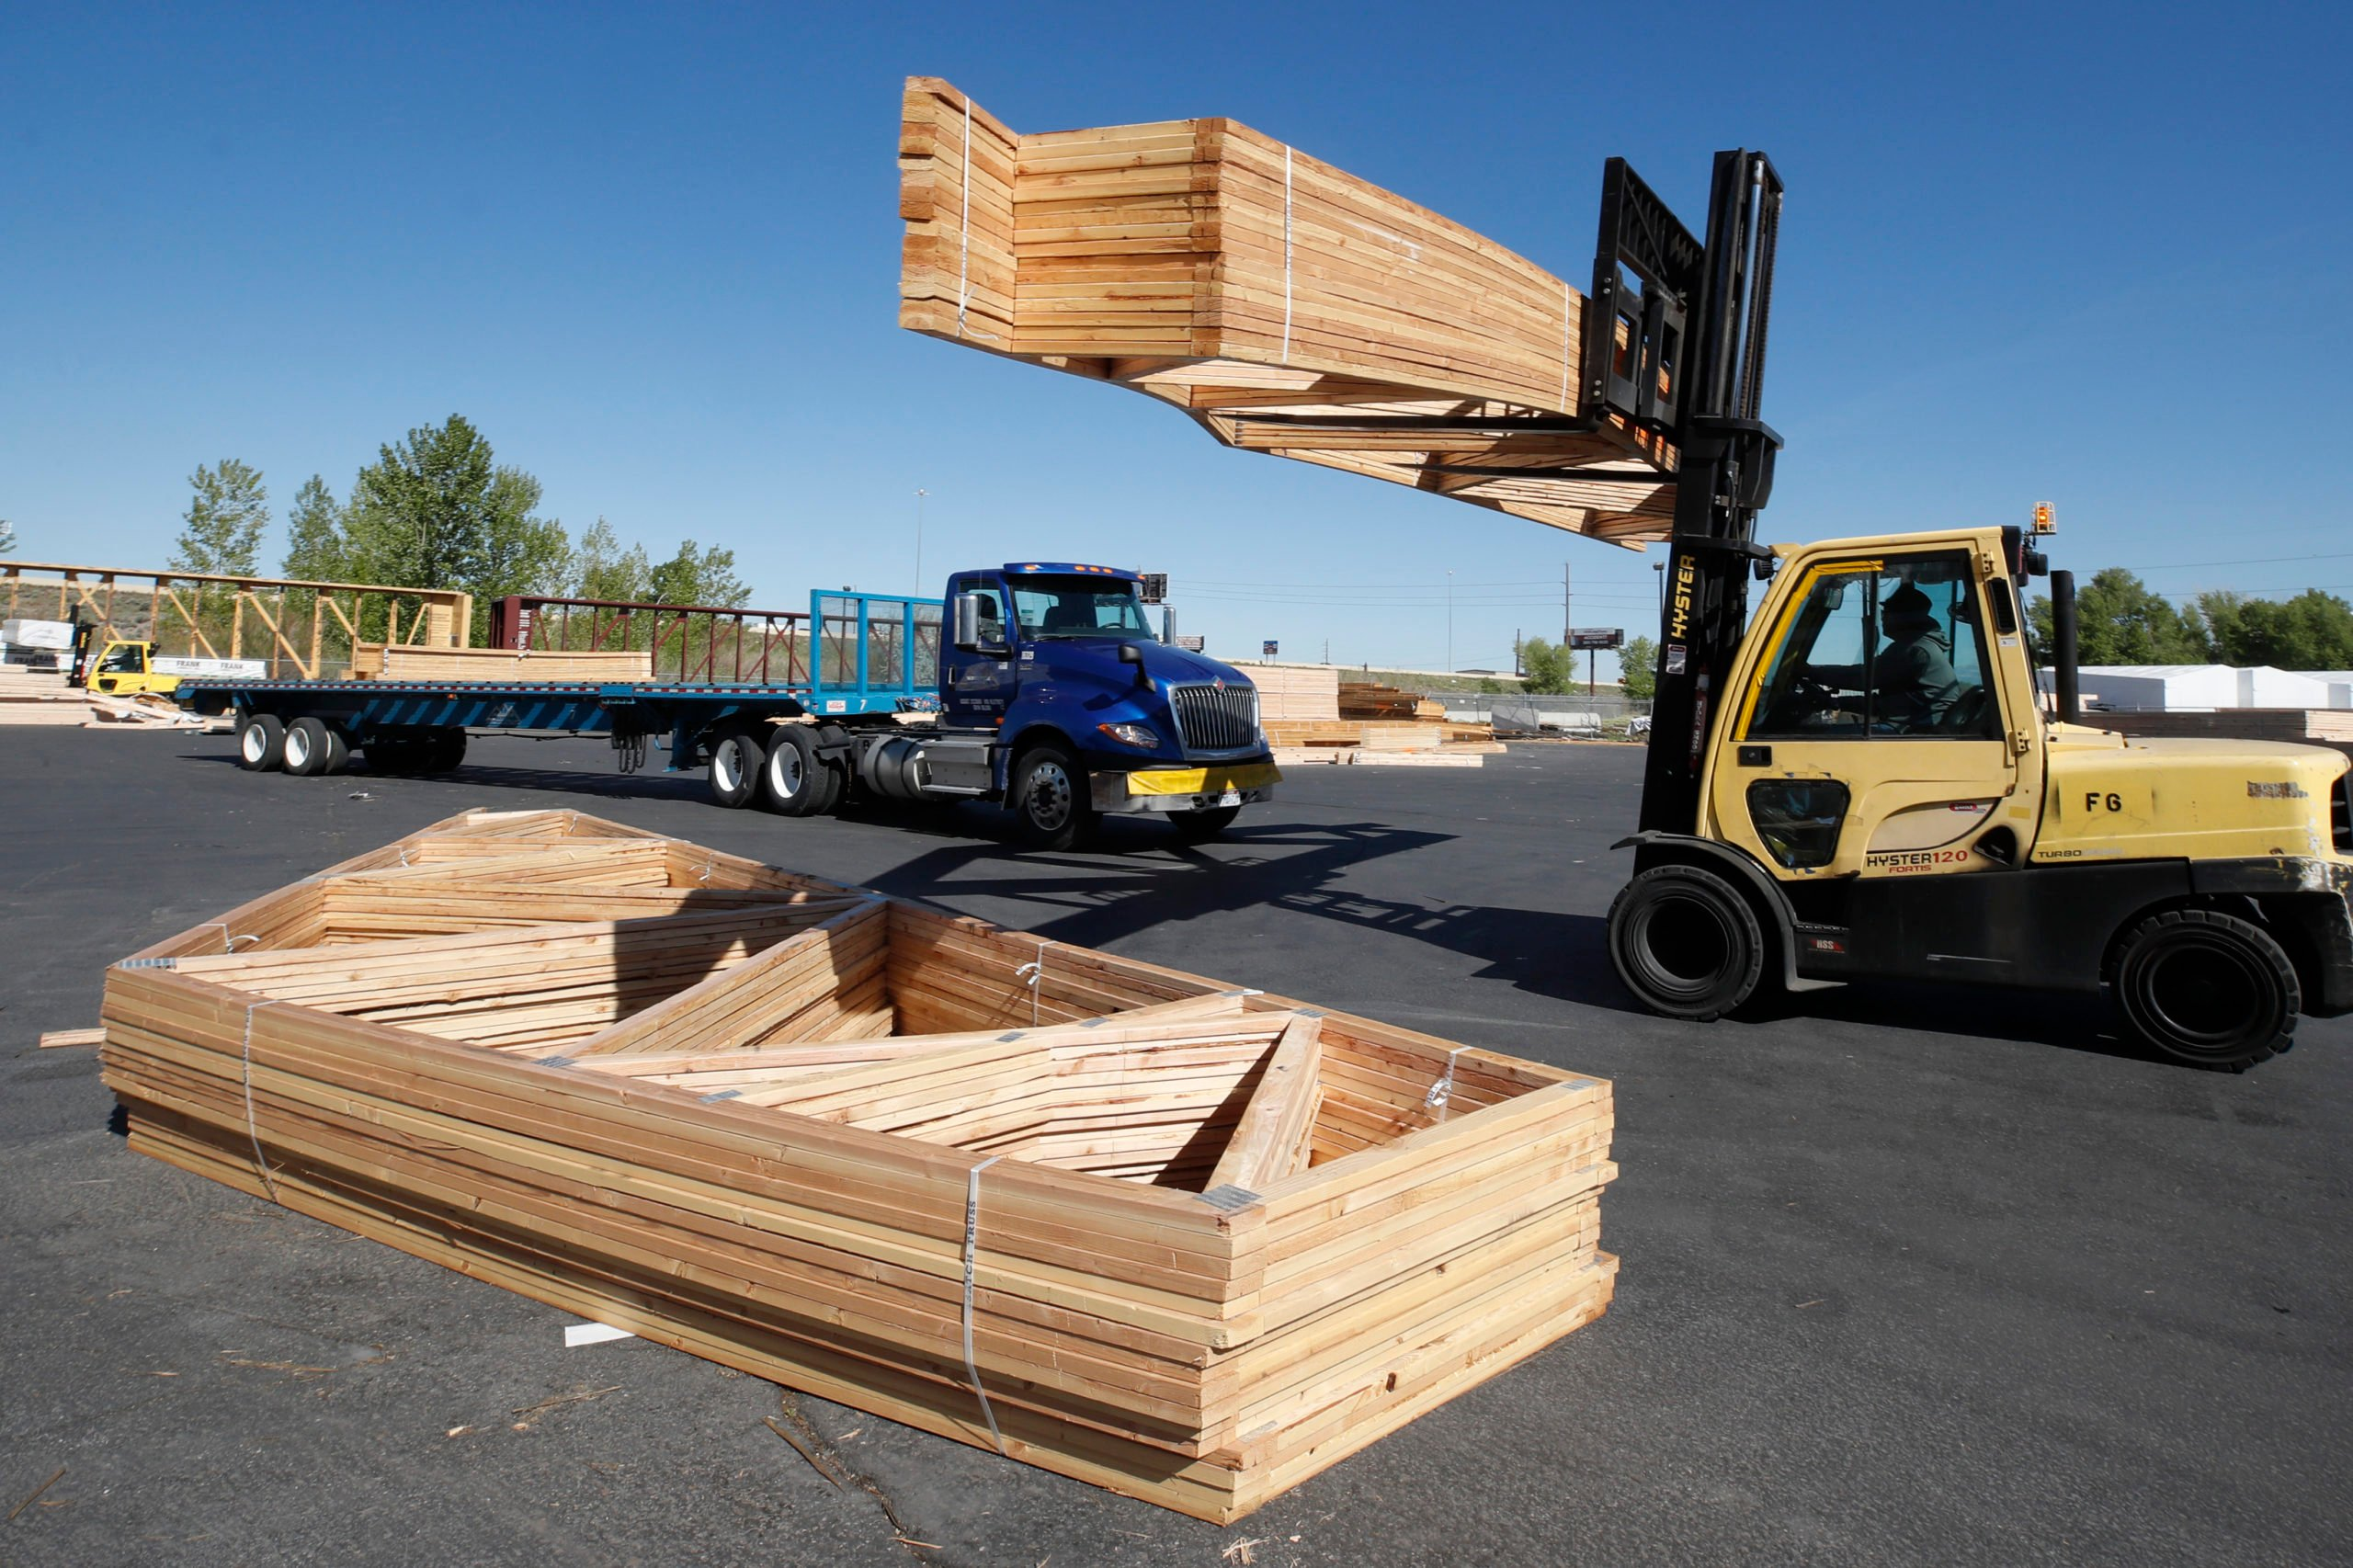 A worker loads finished trusses for homes onto a truck on May 12 in Spanish Fork, Utah. (George Frey/Getty Images)